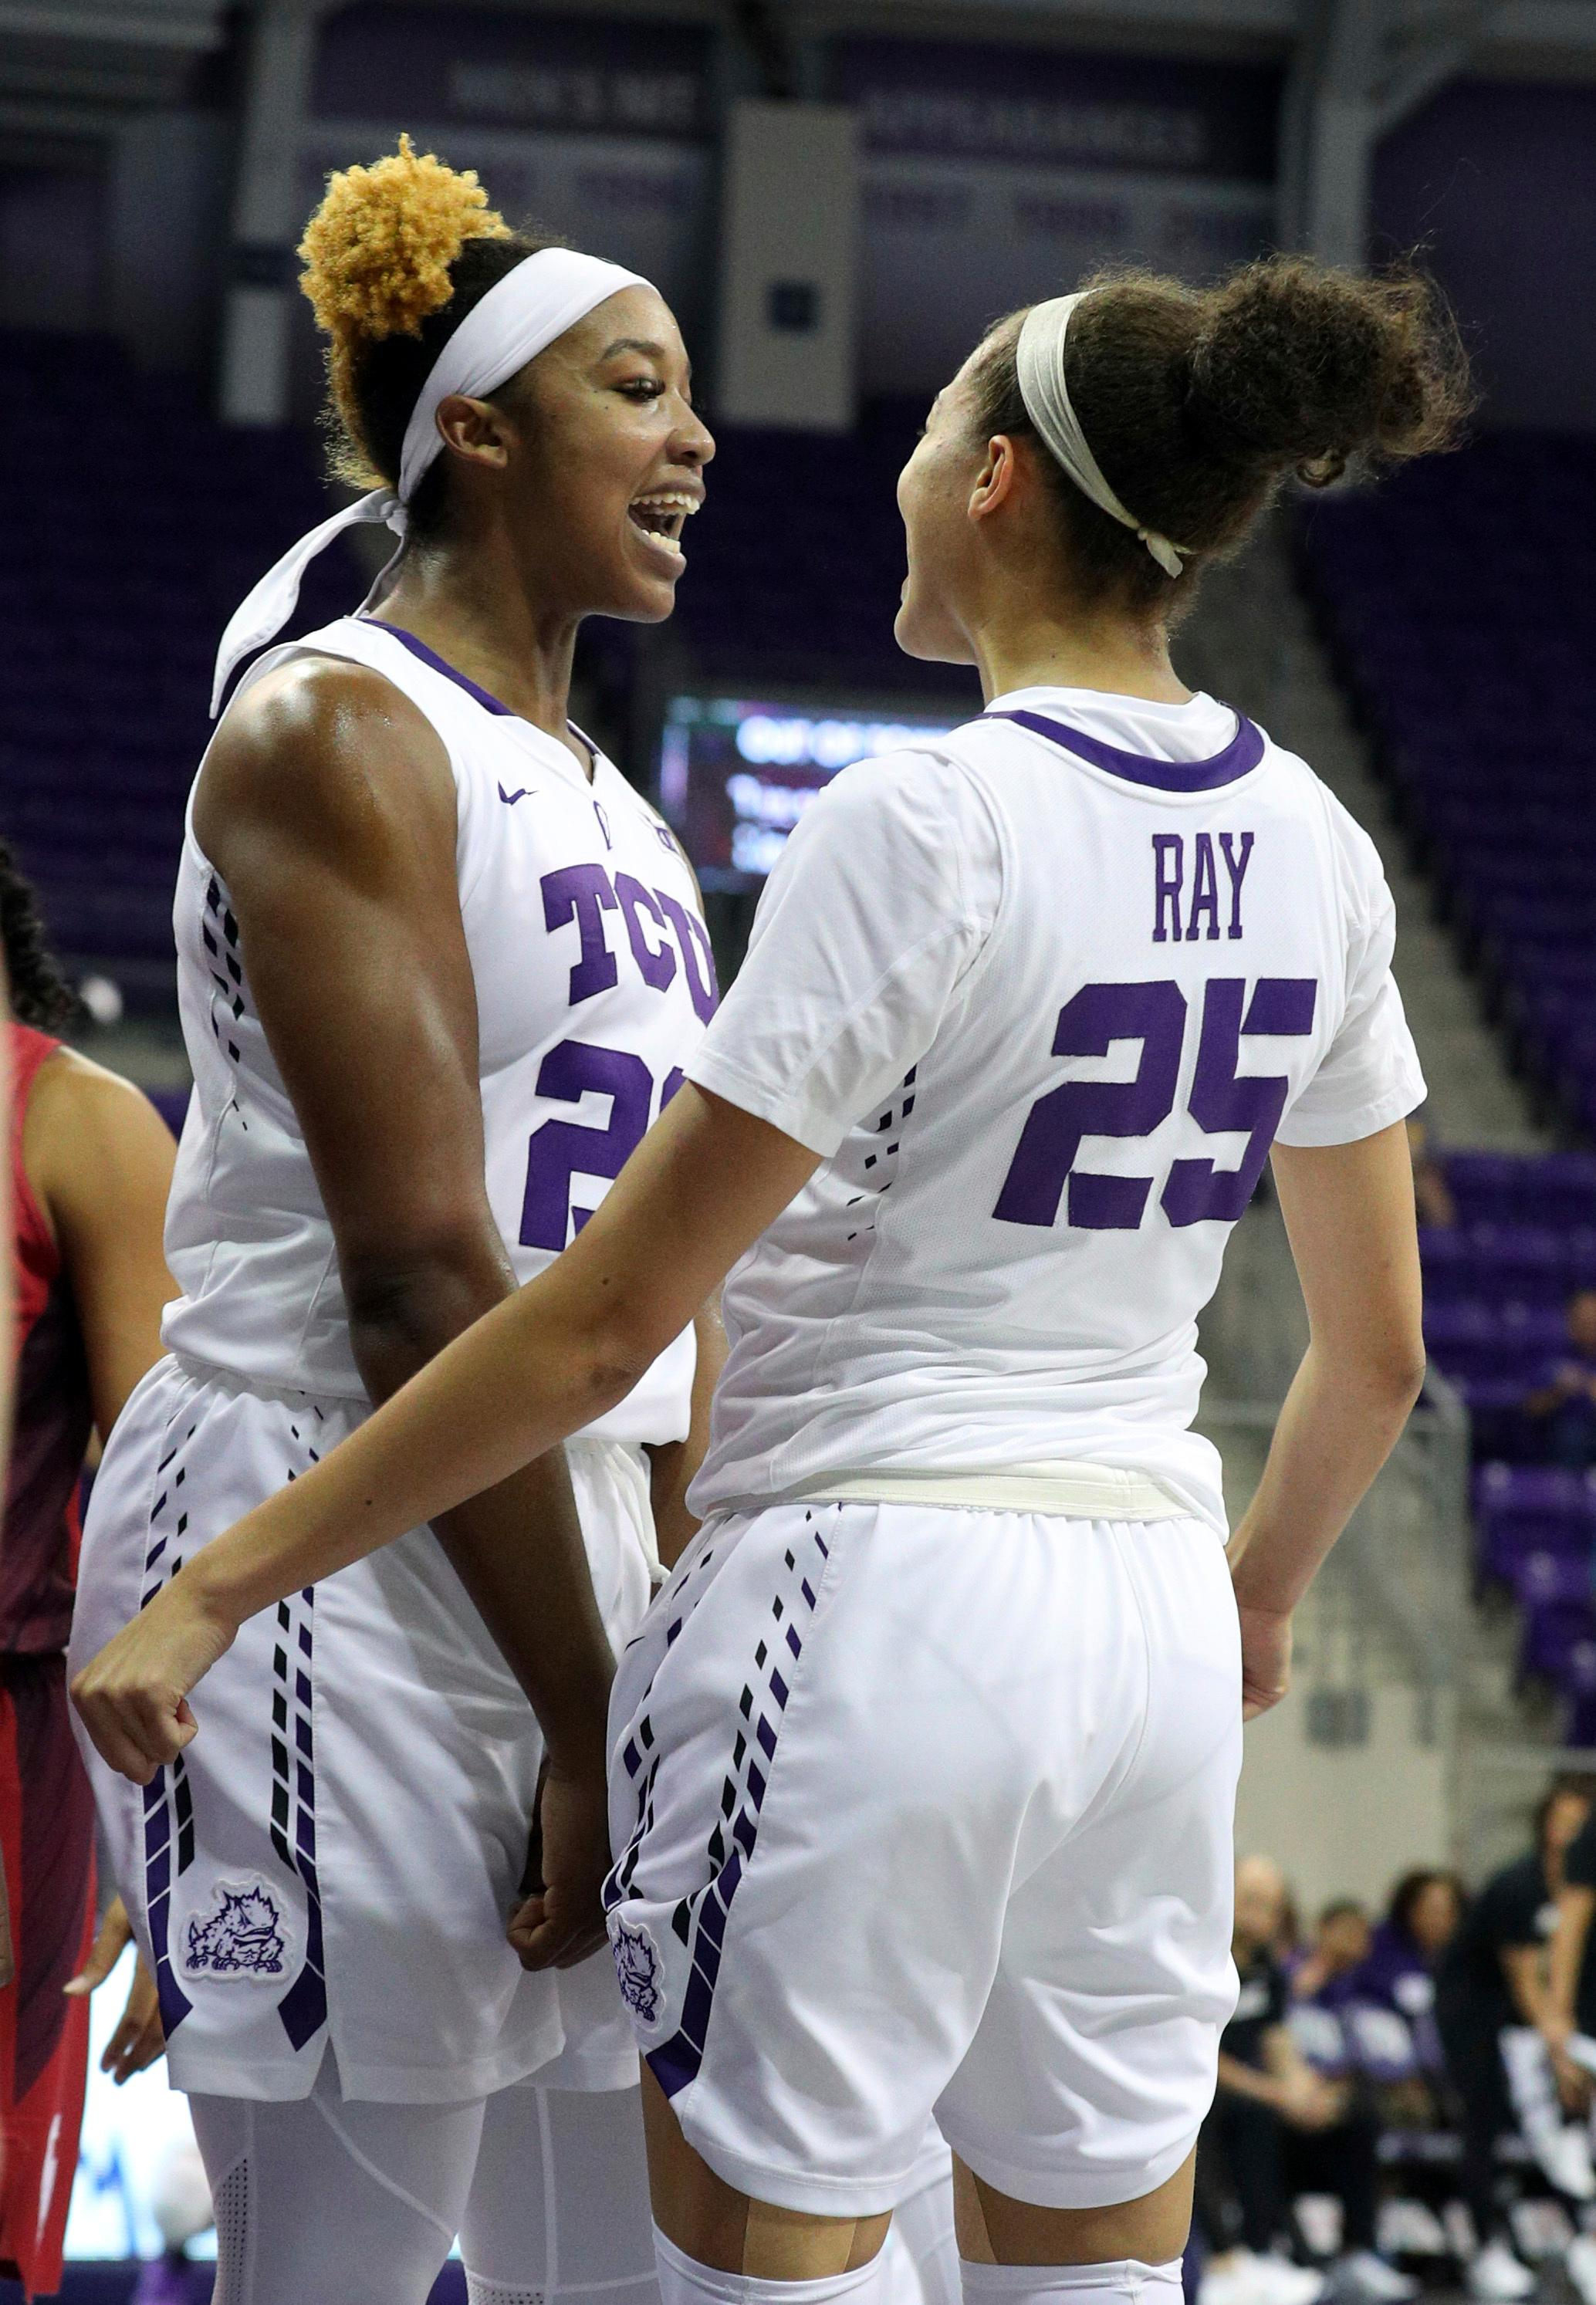 TCU center Jordan Moore (22) and guard Kianna Ray (25) celebrate after a basket against Oklahoma during an NCAA college basketball game in Fort Worth, Texas, Saturday, Jan. 27, 2018. (Richard W. Rodriguez/Star-Telegram via AP)